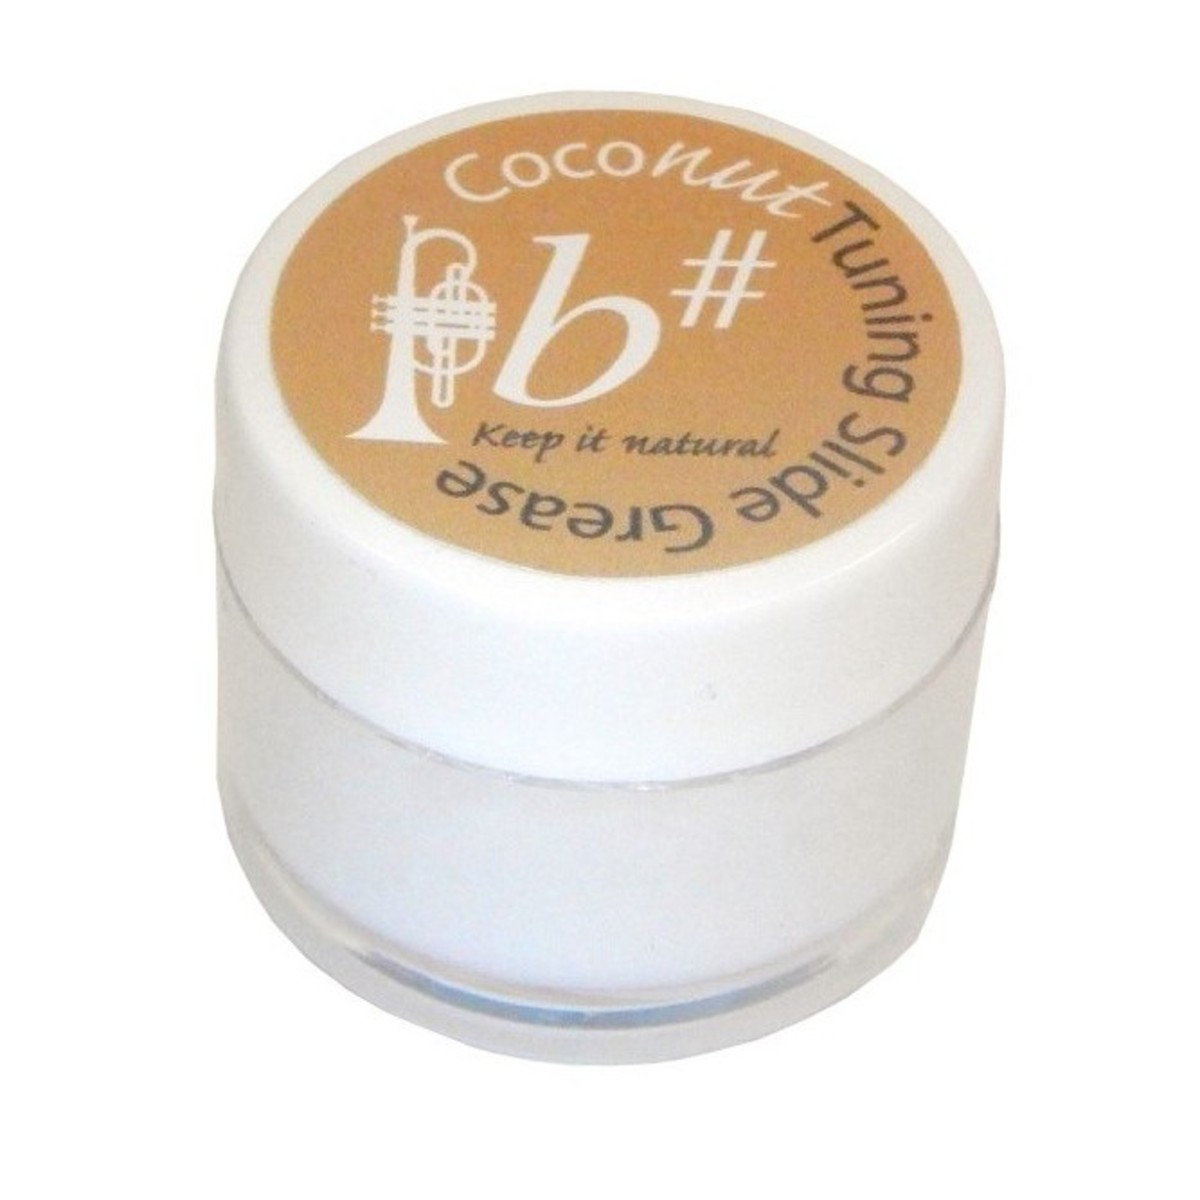 Image of Bsharp Coconut Tuning Slide Grease